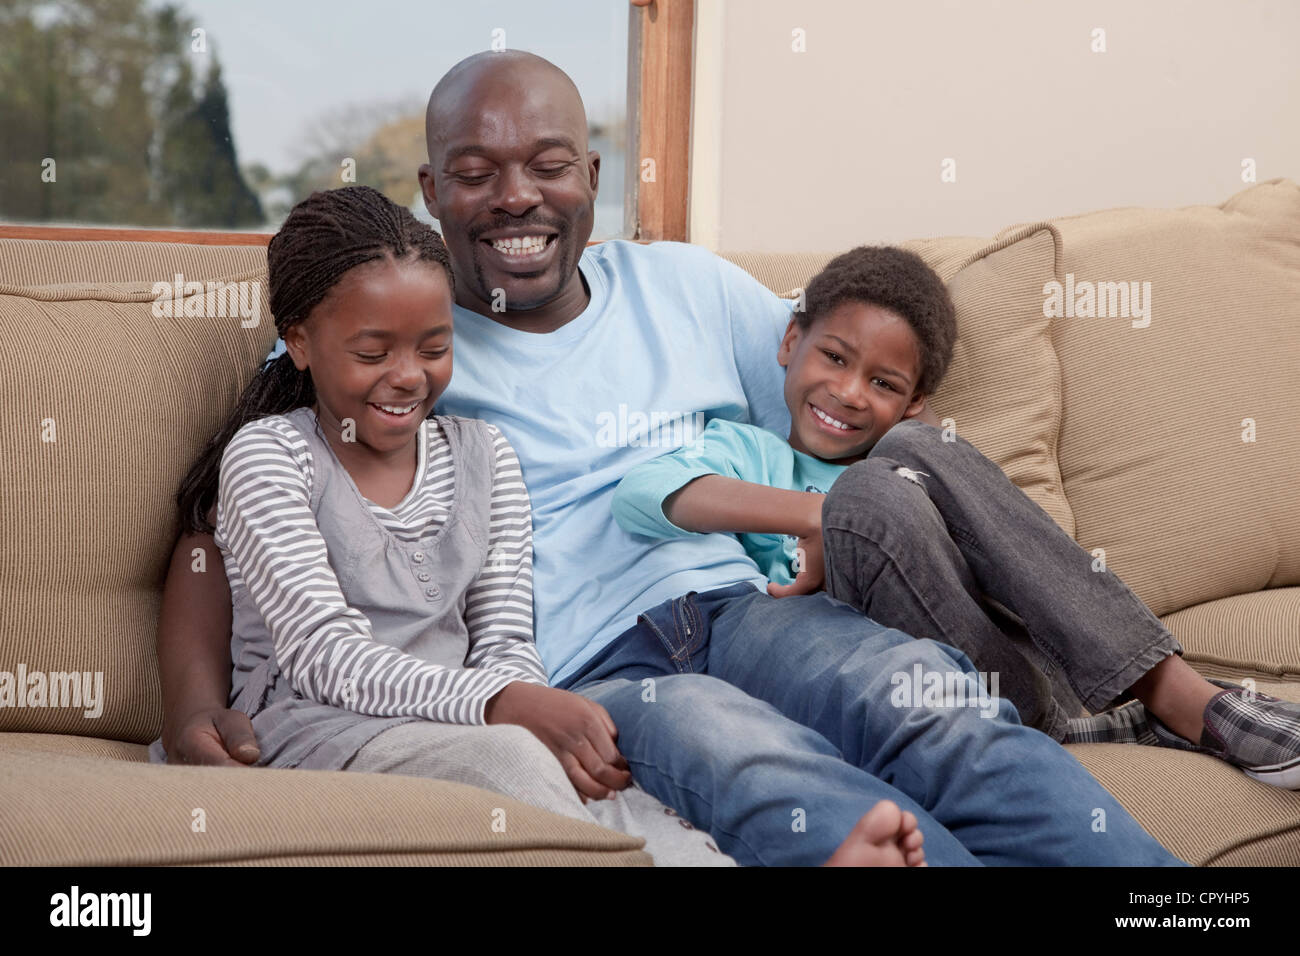 Father and children lovingly sitting together, Illovo Family, Johannesburg, South Africa. - Stock Image